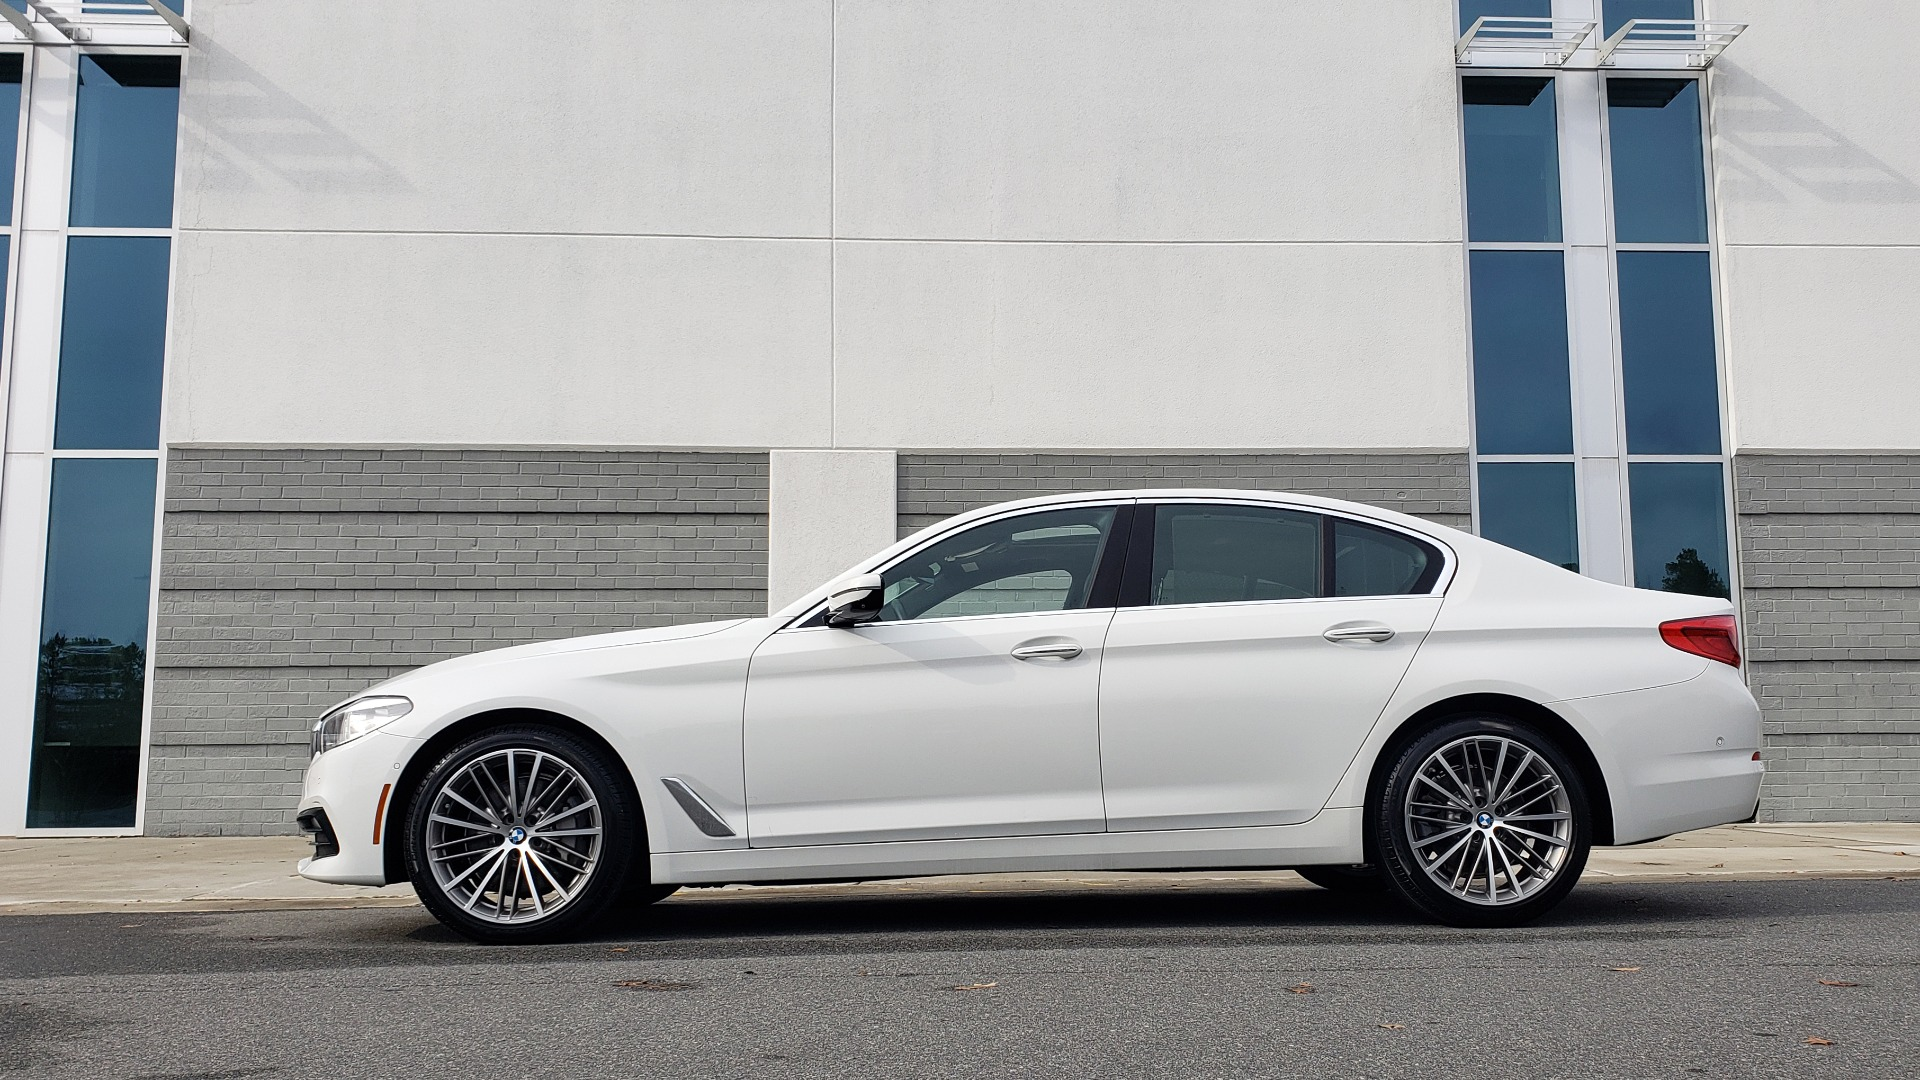 Used 2017 BMW 5 SERIES 530I PREMIUM / DRVR ASST PLUS / NAV / HUD / SUNROOF / REARVIEW for sale Sold at Formula Imports in Charlotte NC 28227 5